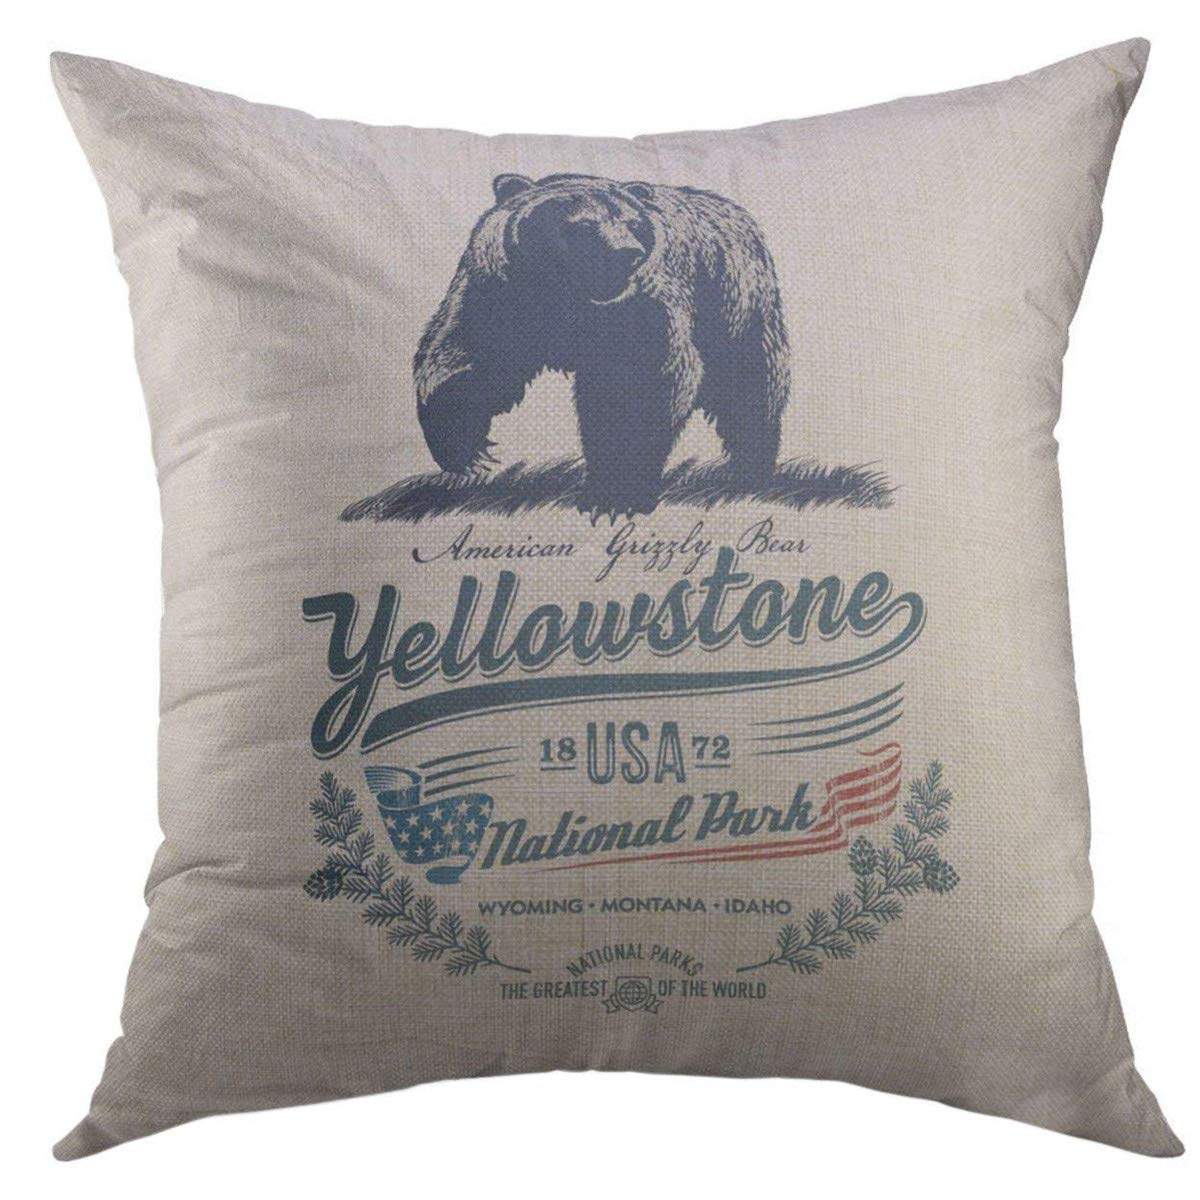 Mugod Decorative Throw Pillow Cover for Couch Sofa,Idaho Grizzly Bear National Park Yellowstone Blue Color Montana Wyoming Home Decor Pillow Case 18x18 Inch